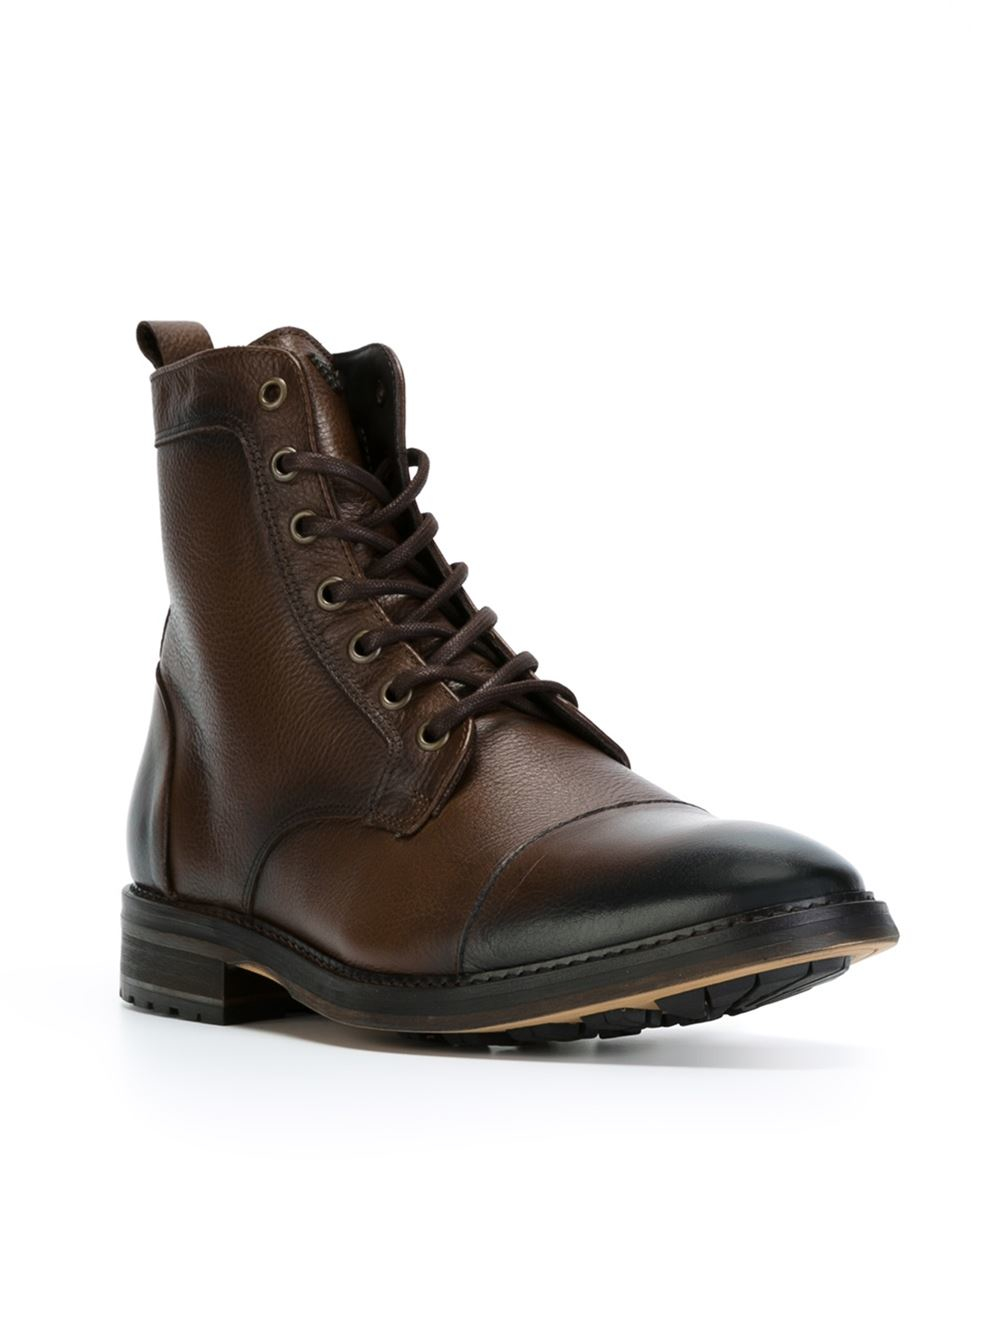 Lyst Armani Jeans Lace Up Boots In Brown For Men